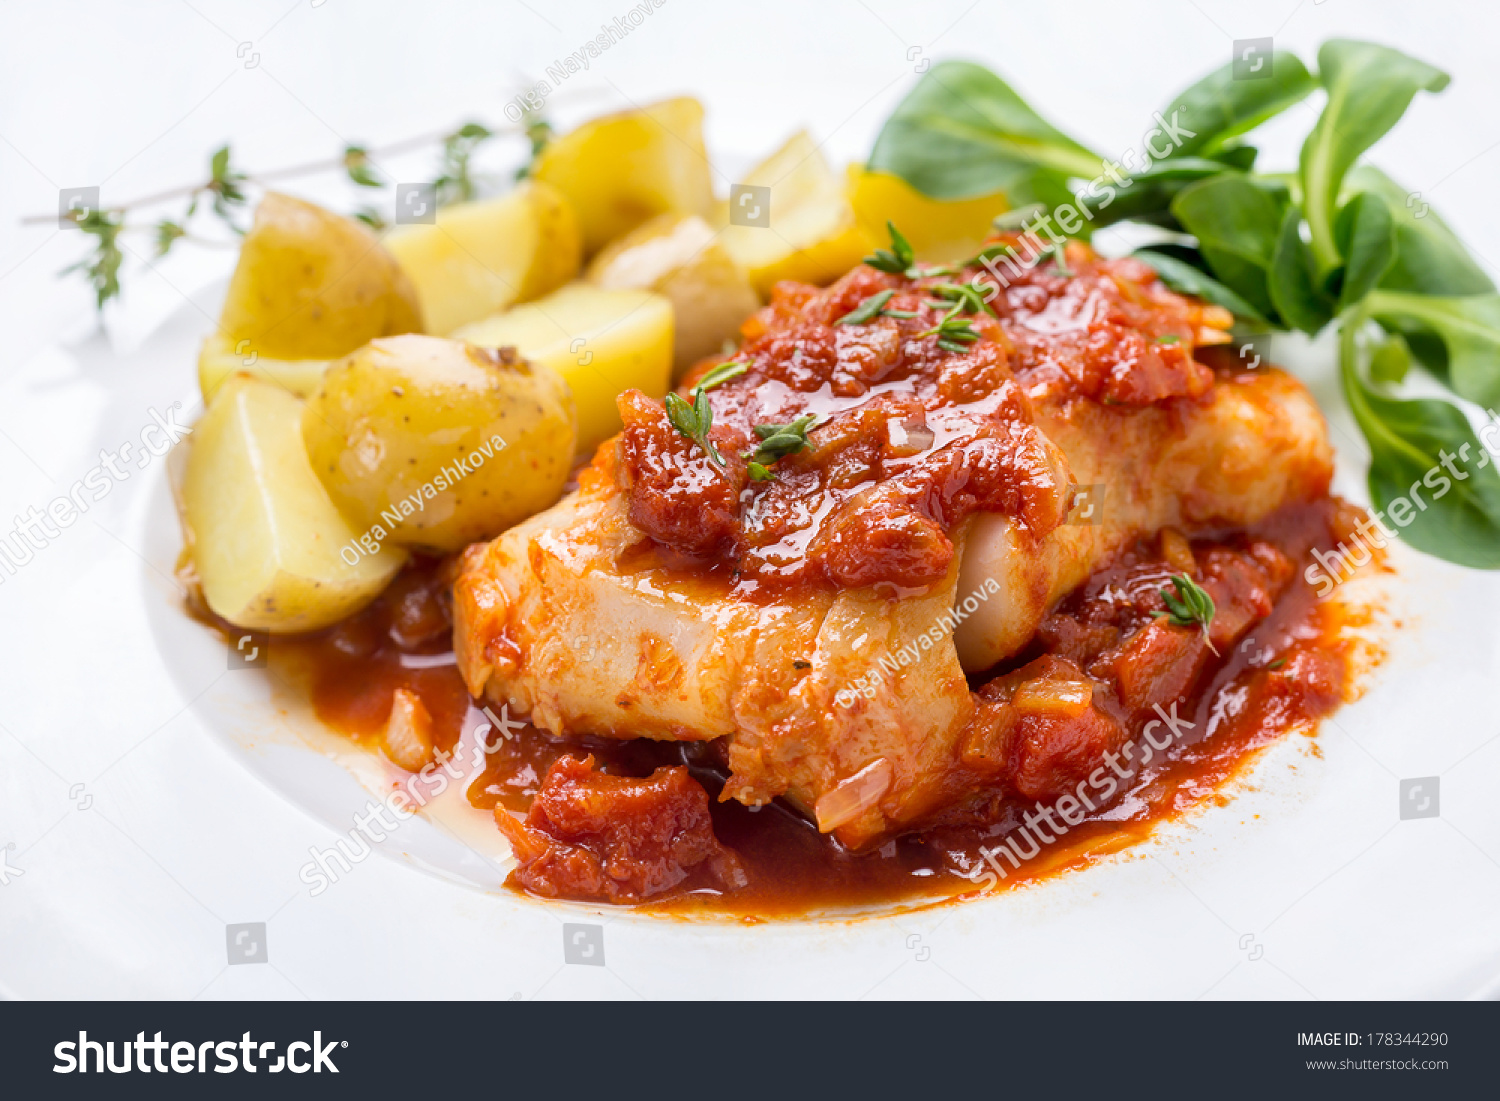 Plate of Cod or Pollack Fish Fillet Stewed in Tomato and Thyme Sauce ...